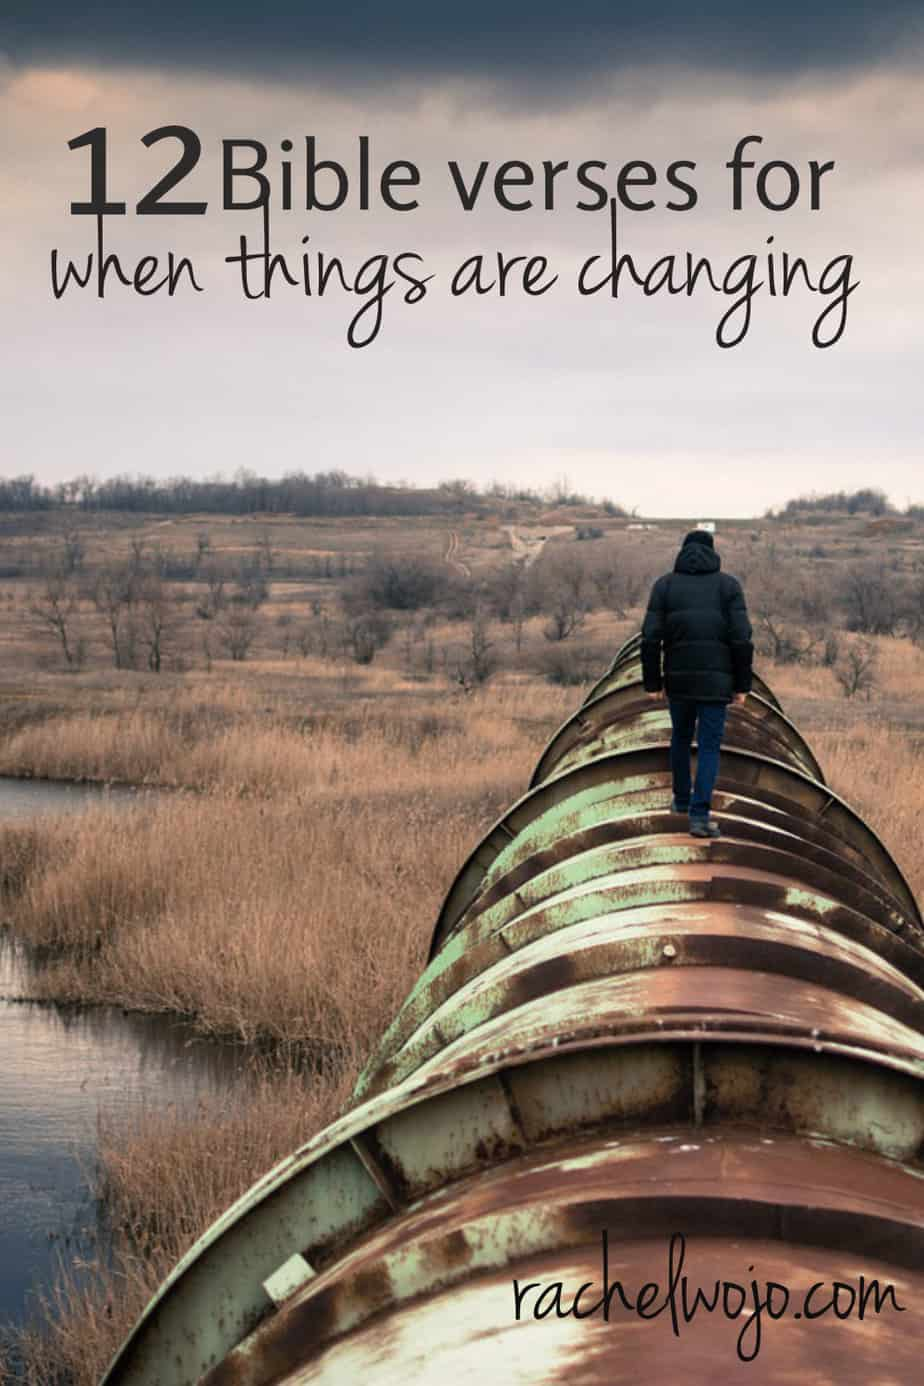 Life Changing Bible Quotes 12 Bible Verses For When Things Are Changing  Rachelwojo